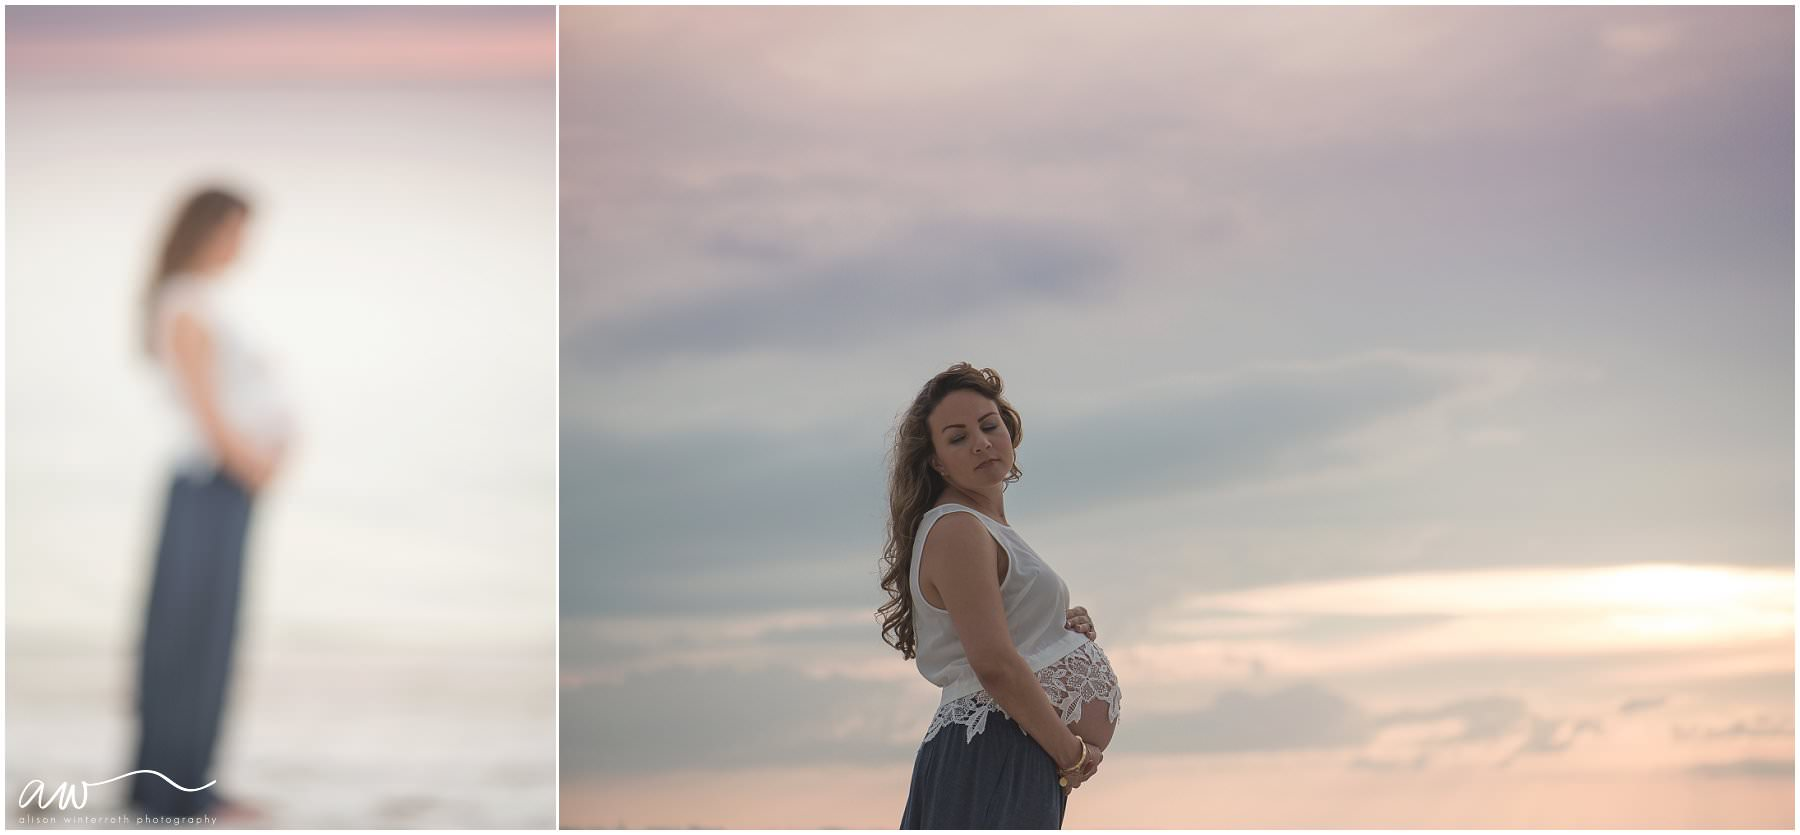 Sunset baby photography